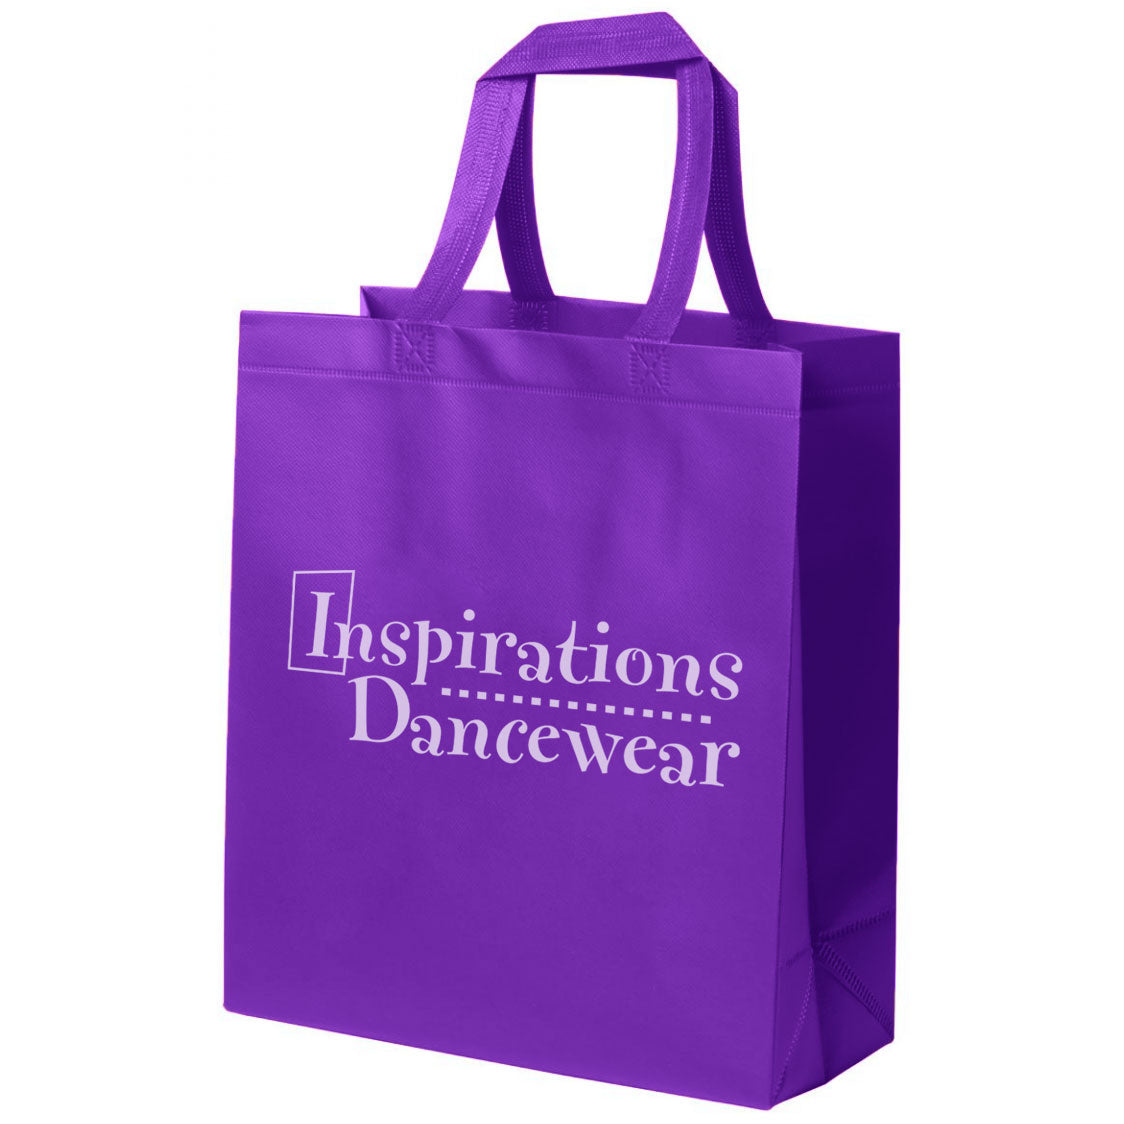 Pick-Up Order At Inspirations Dancewear